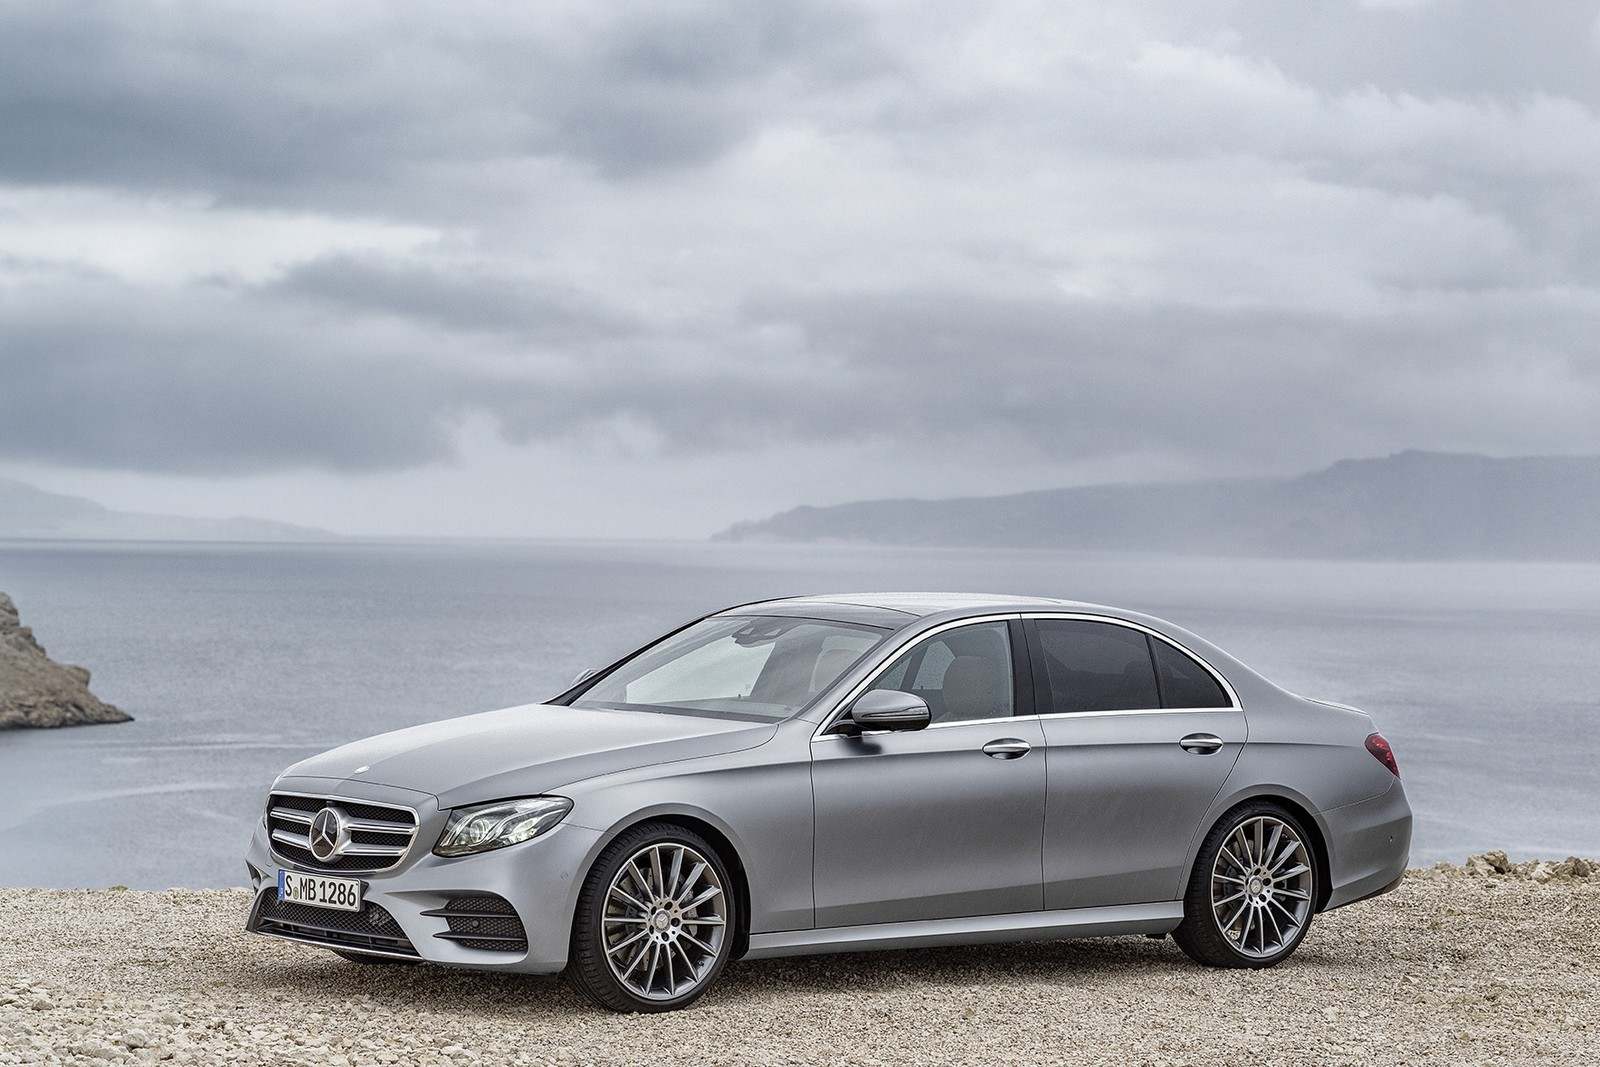 Mercedes-benz e-class photo - 2